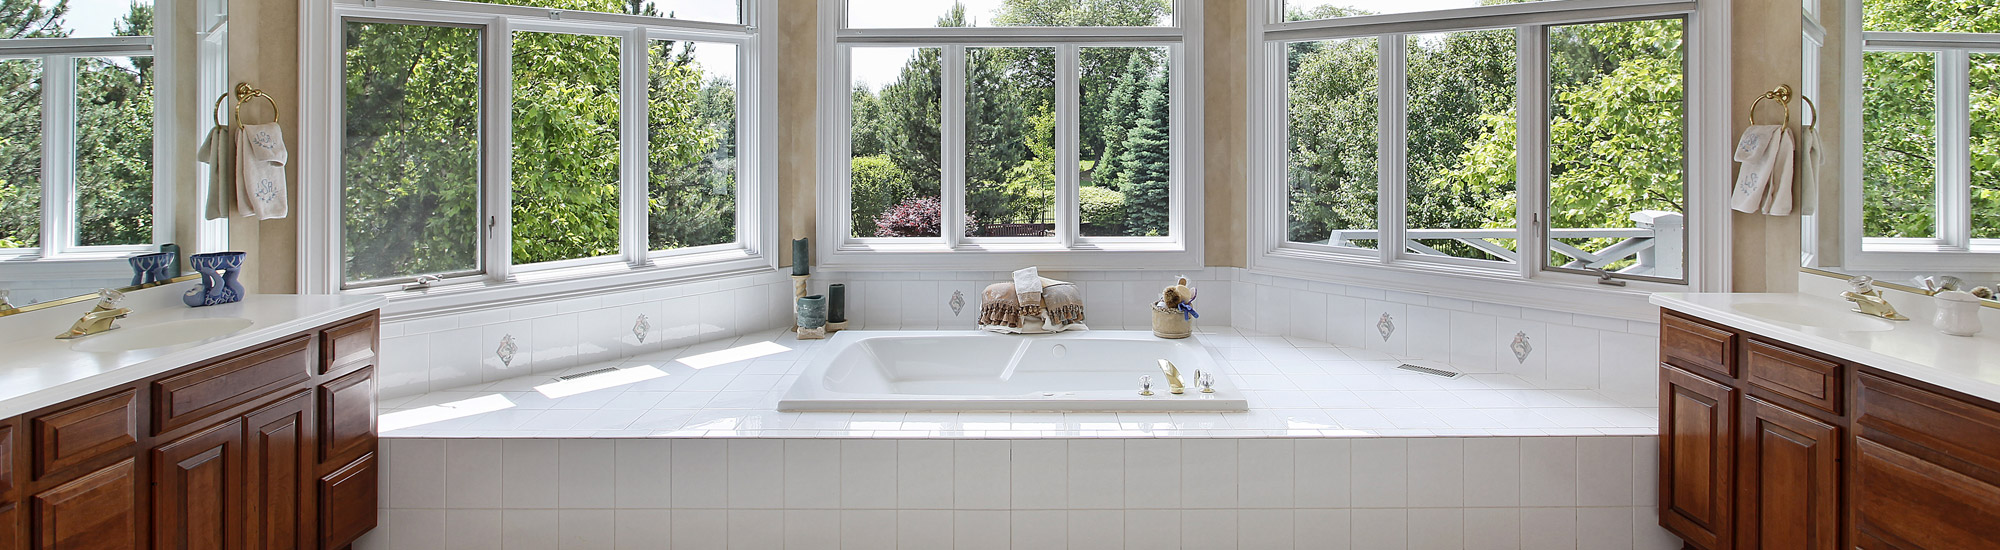 Large Bathtub Surrounded by Windows